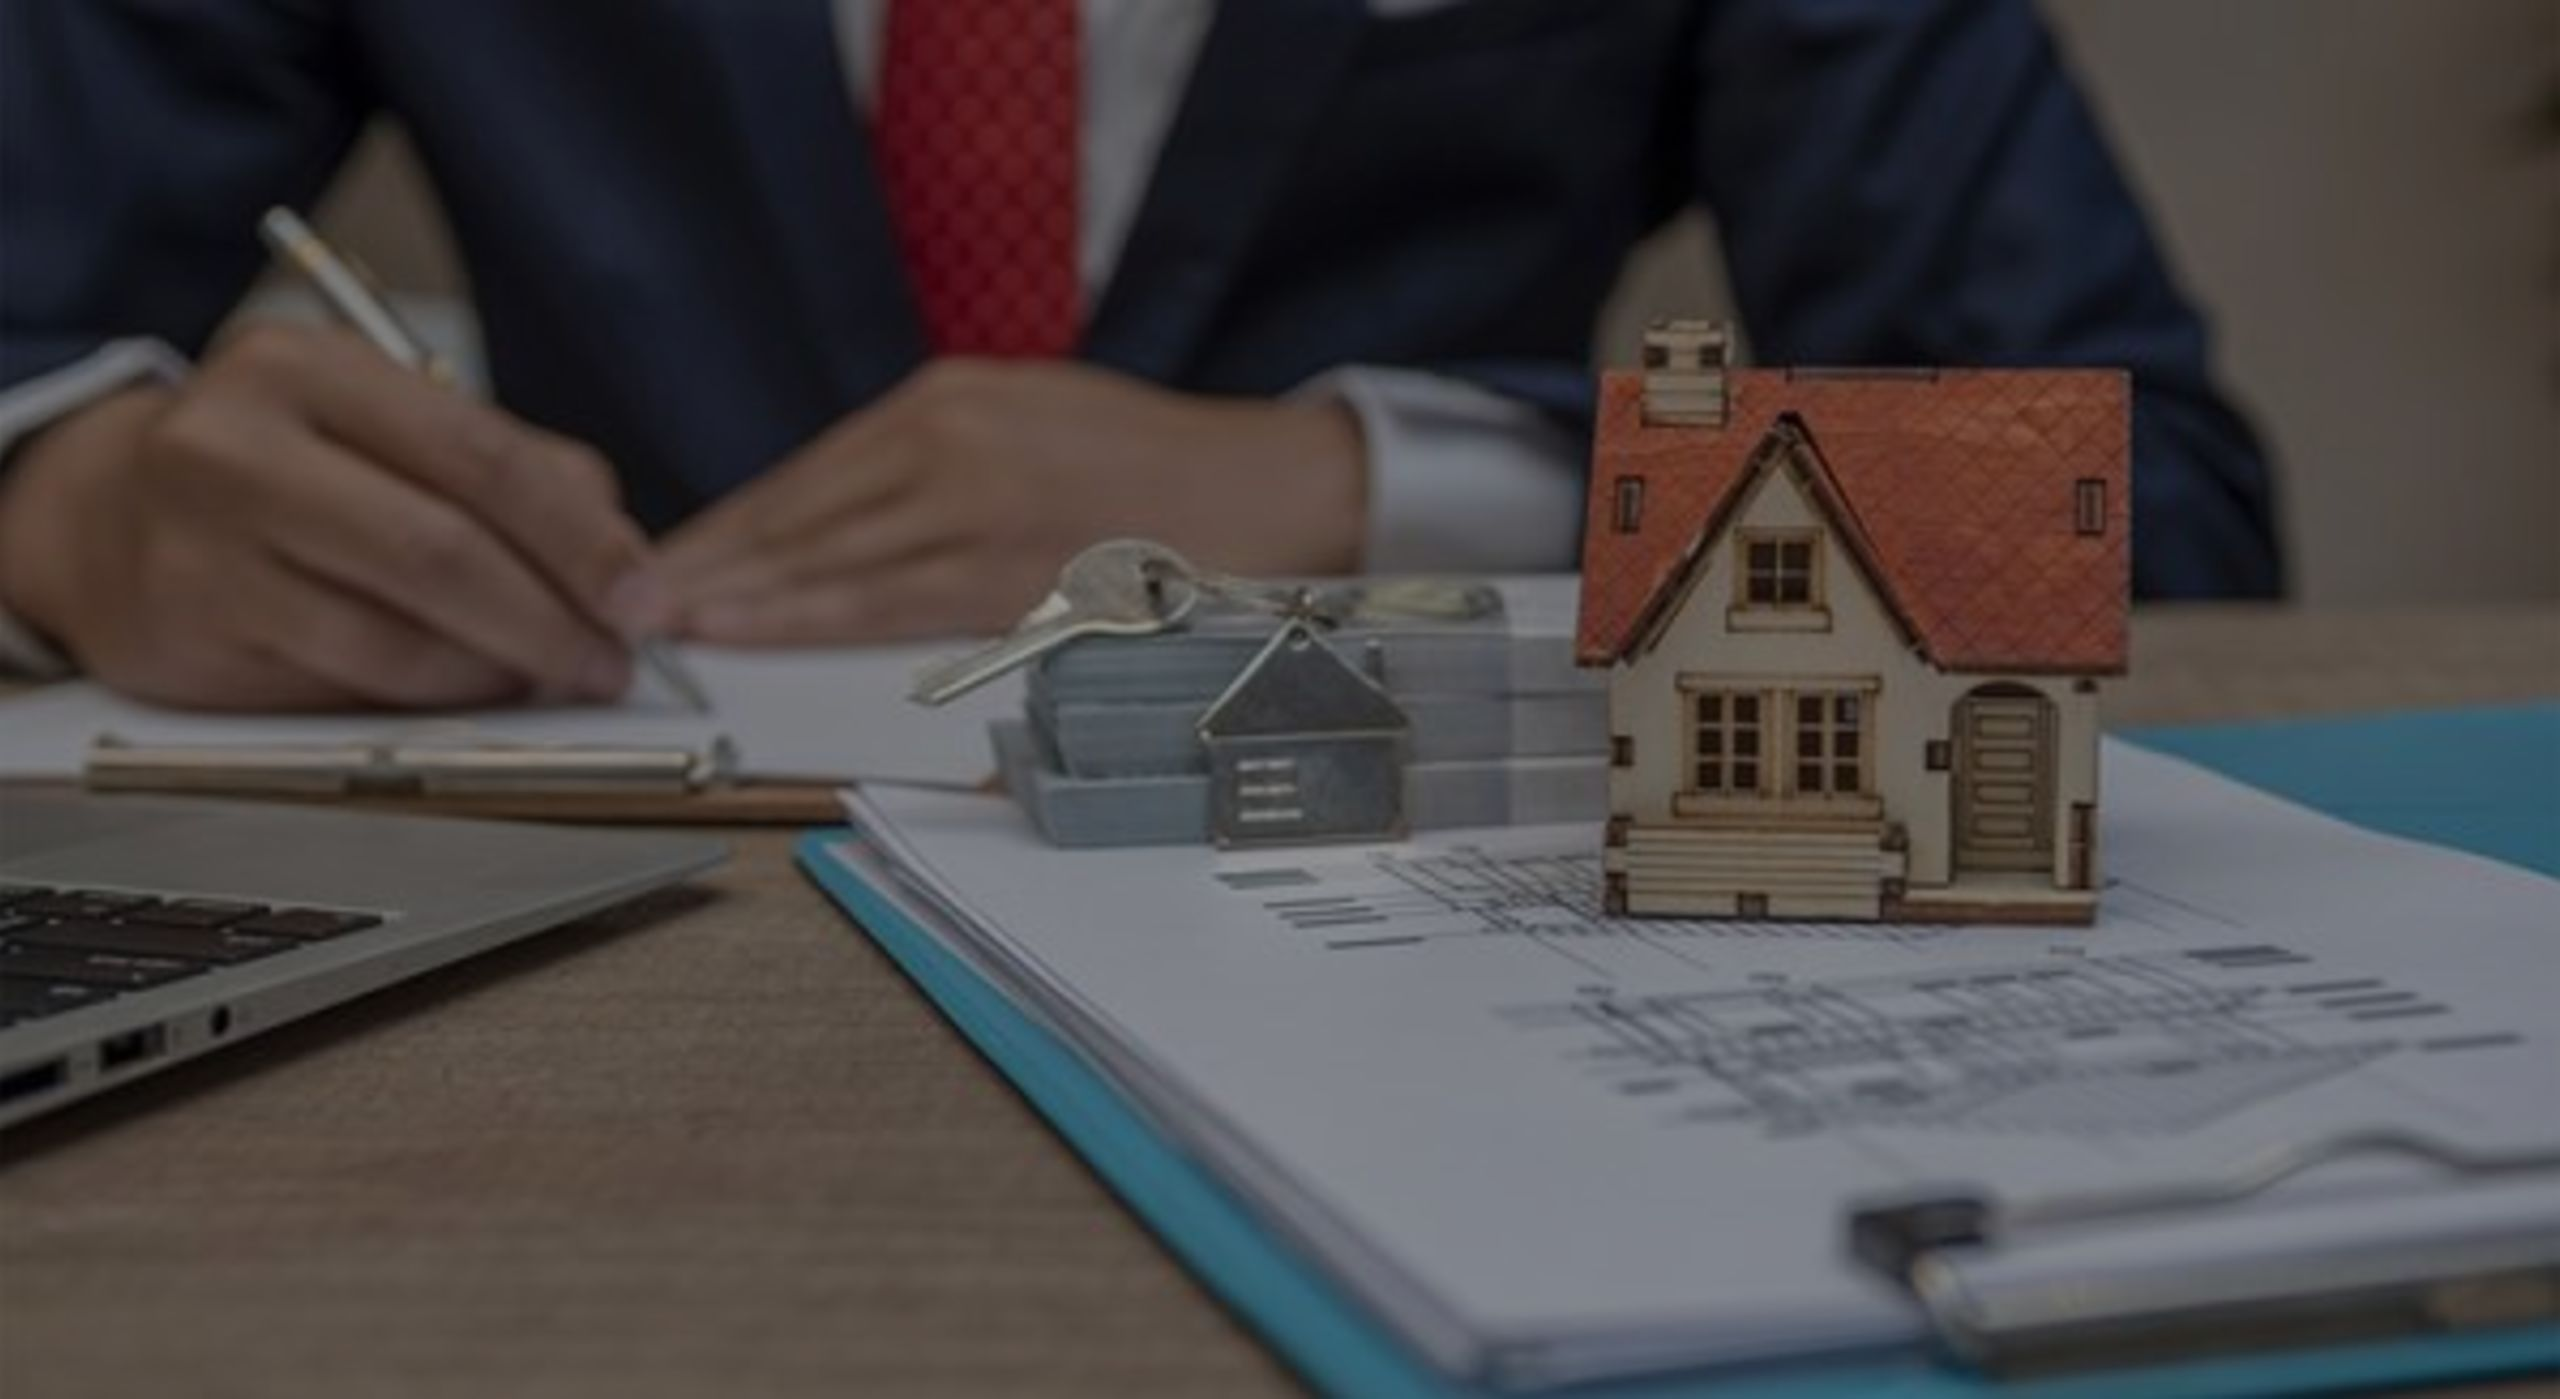 Americans' Powerful Belief in Homeownership as an Investment